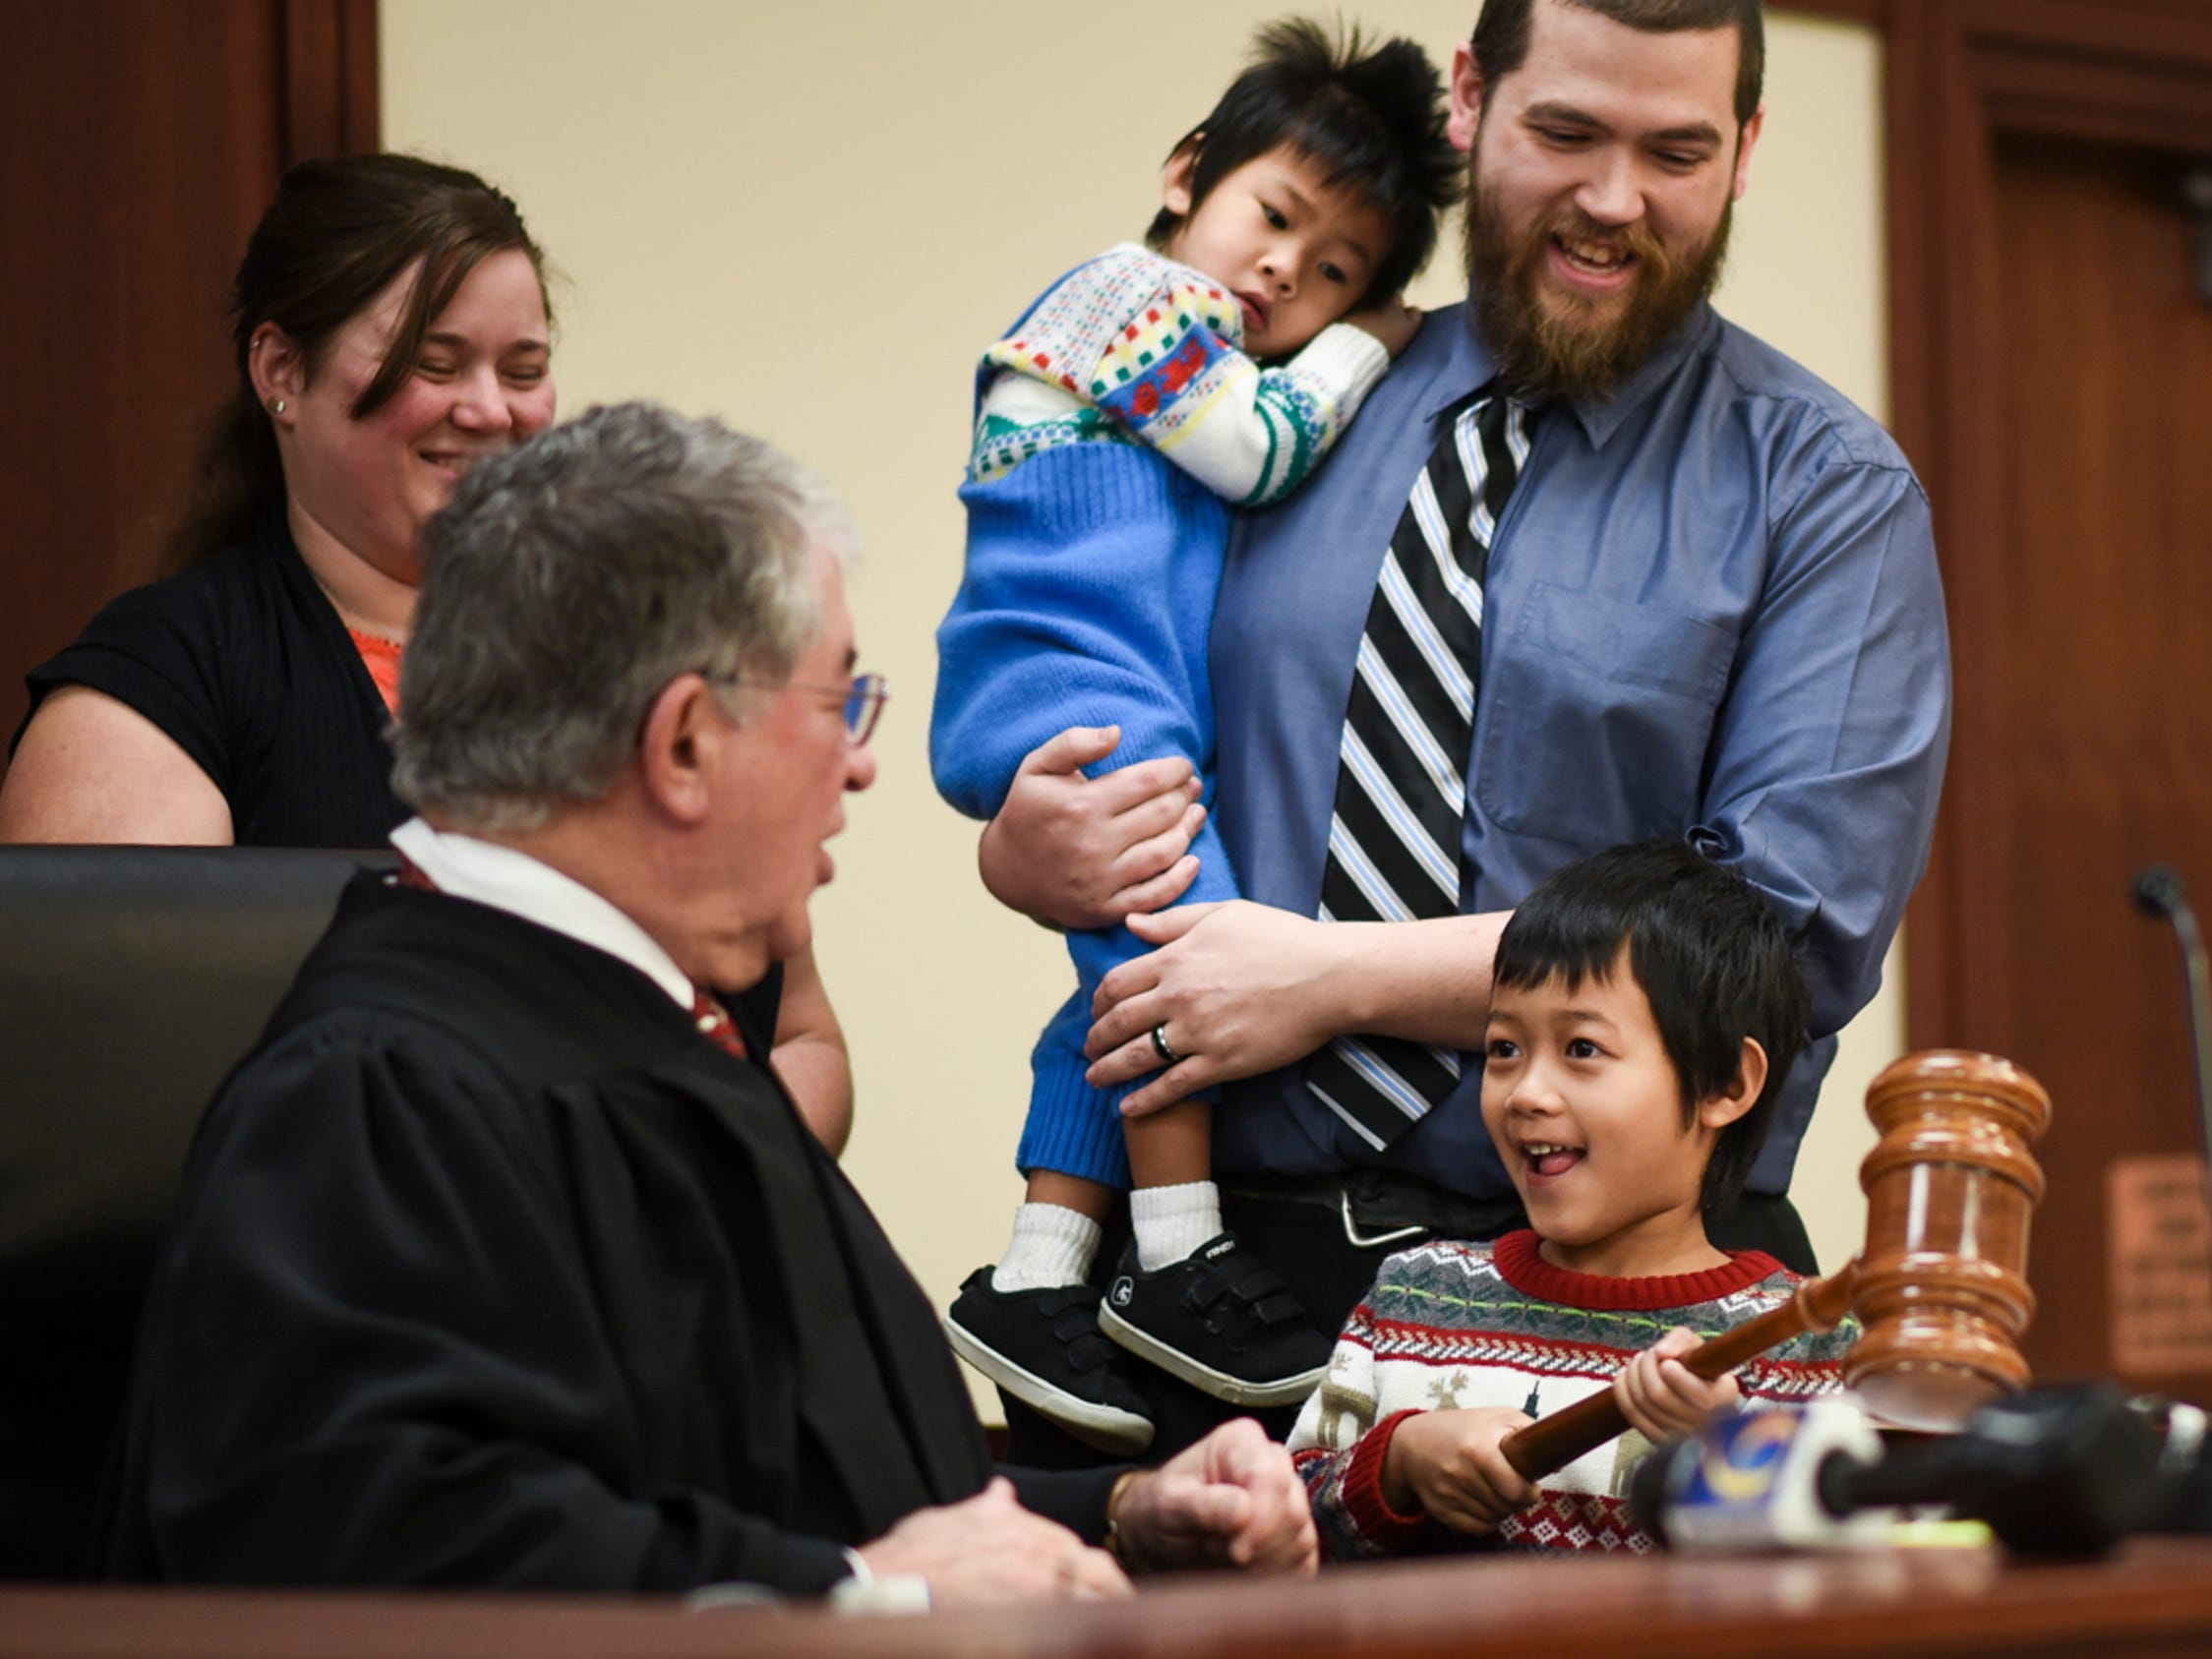 Five-year-old Nathanael Blakely of Mason, gets a chance to use Ingham County Probate Judge George Economy's special Christmas gavel during a hearing that made adoptions of himself and his 2-year-old brother Owen official, Tuesday, Dec. 18, 2018, at Veterans Memorial Courthouse in Lansing.  Economy has held adoption week 32 of his 33 years on the bench.  This is his final week before retiring.  Also pictured are Mark and Emily, the boys' parents.